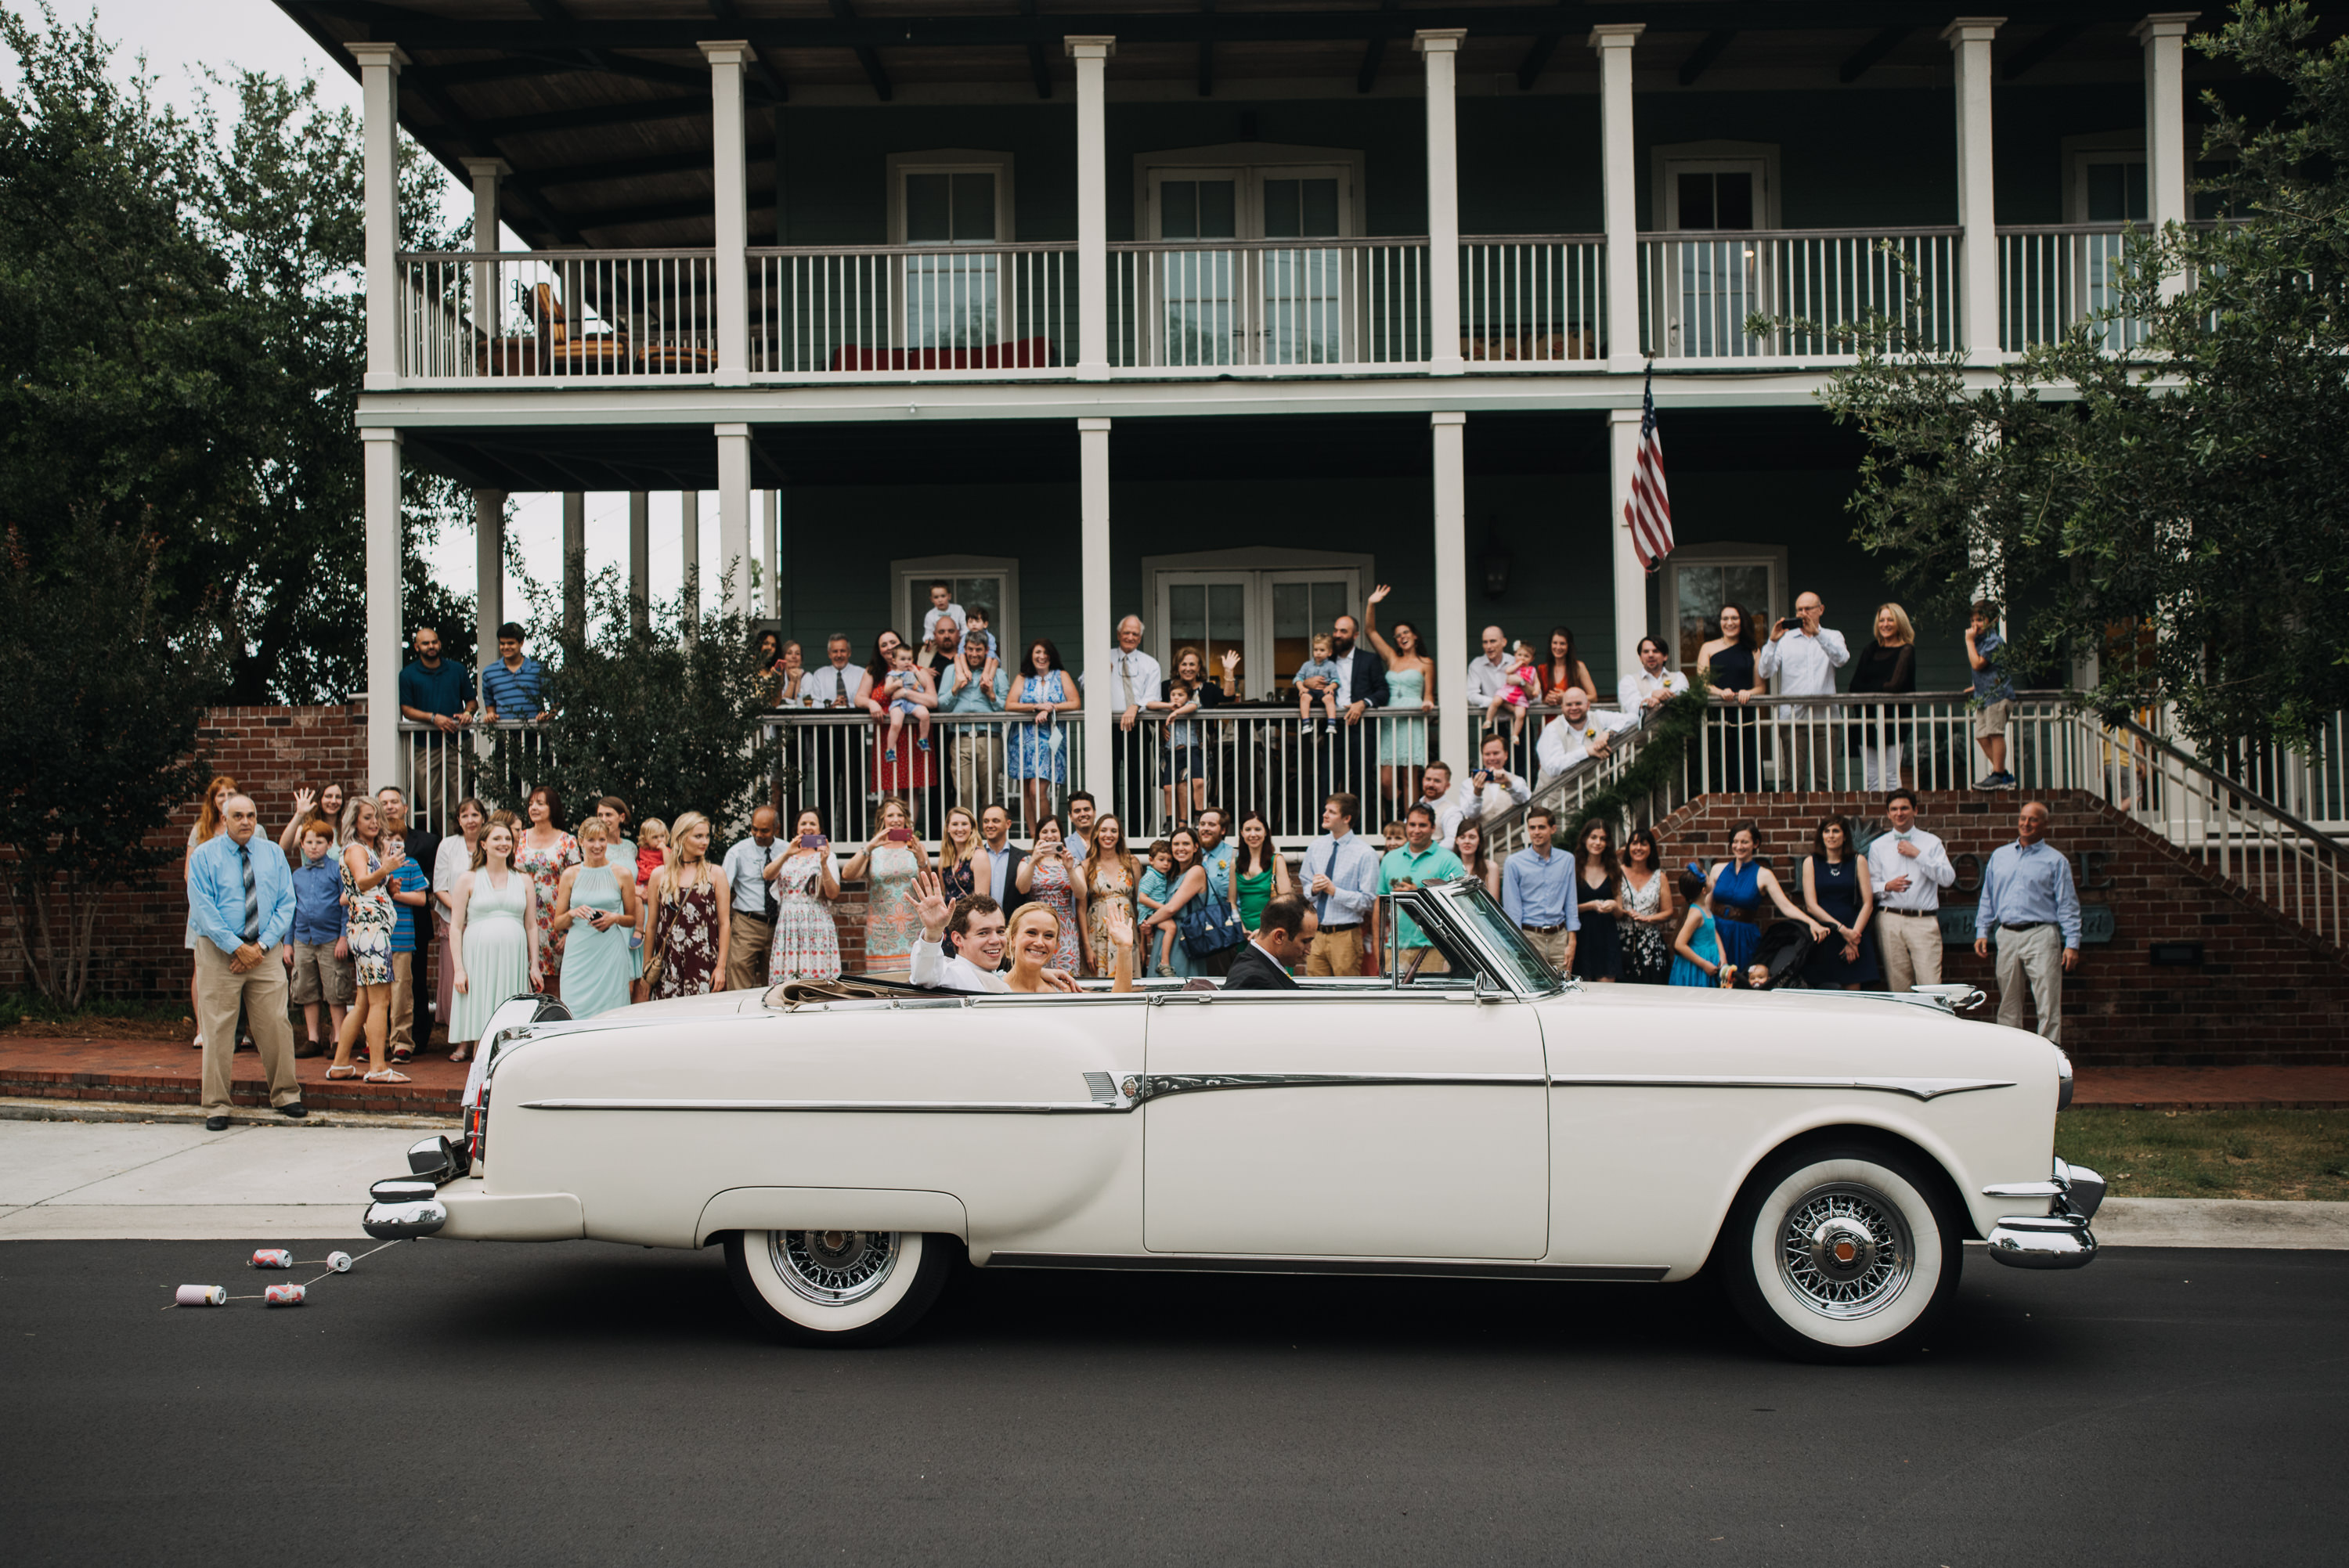 lee house pensacola bride and groom grand exit convertible